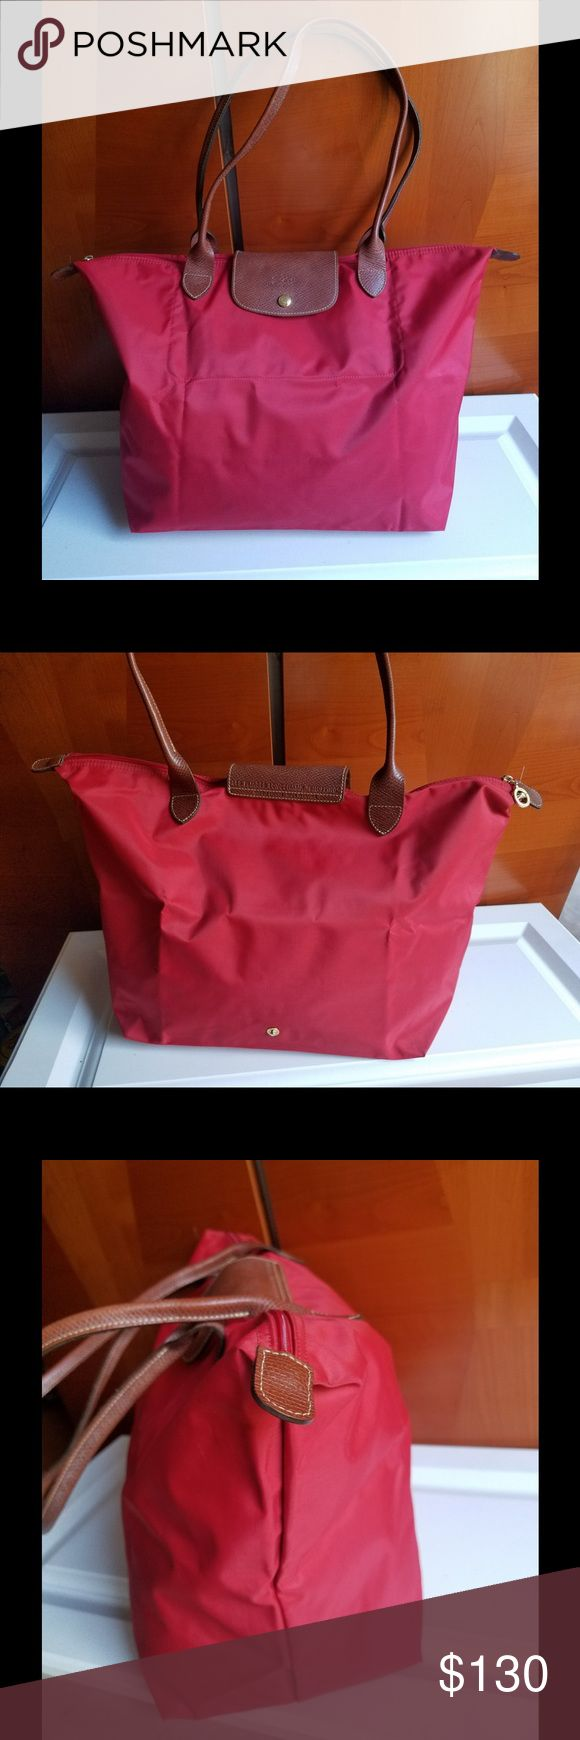 LONGCHAMP SHOPPING TOTE MODEL DEPOSE BRIGHT RED Bright Red Large Longchamp  Shopping Tote About 12 Inch